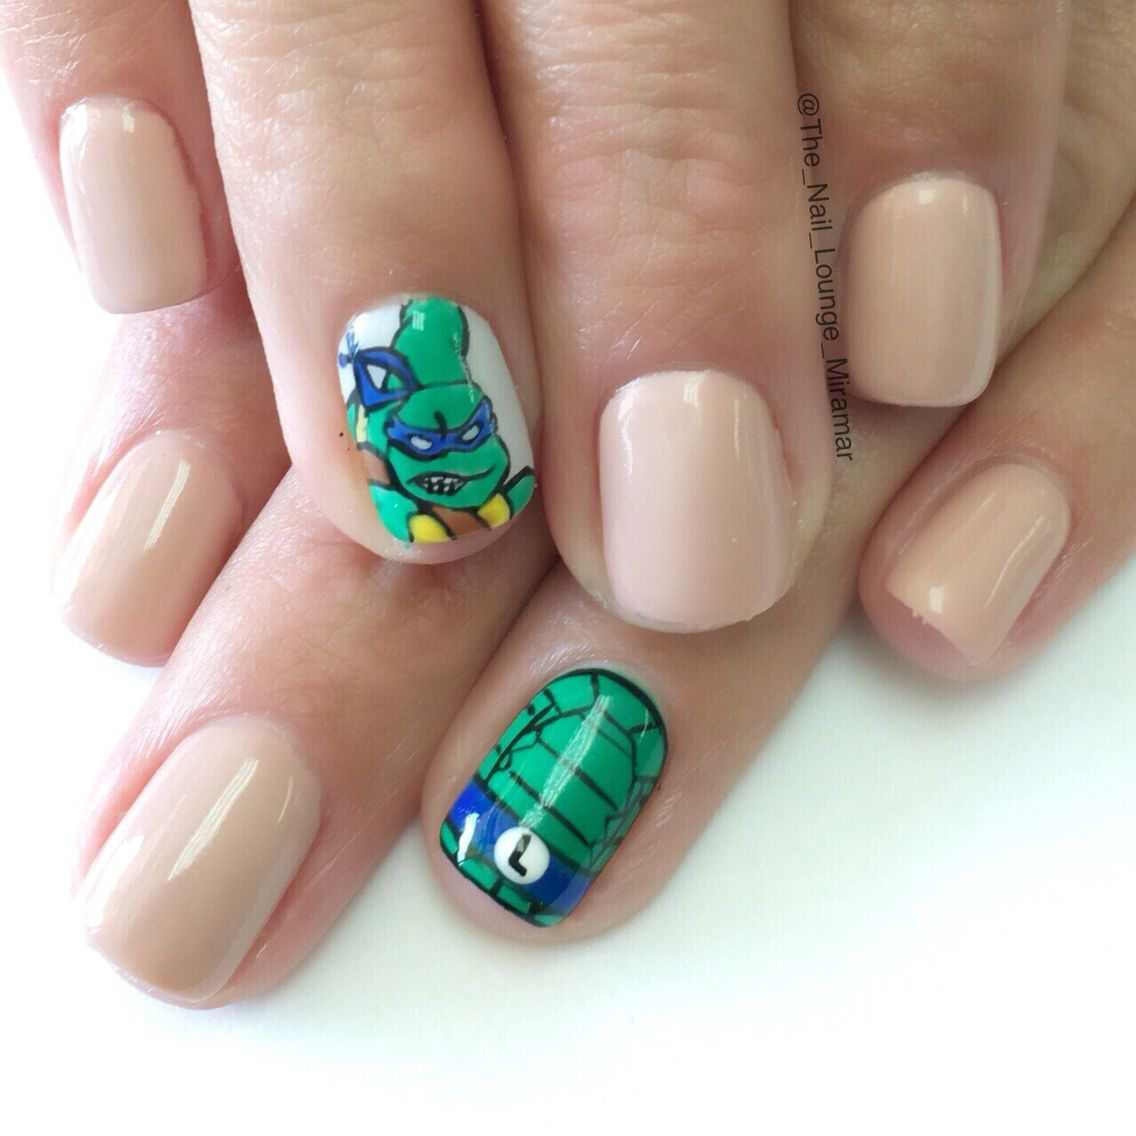 Teenage mutant ninja turtles nail art design | Nail Art | Pinterest ...